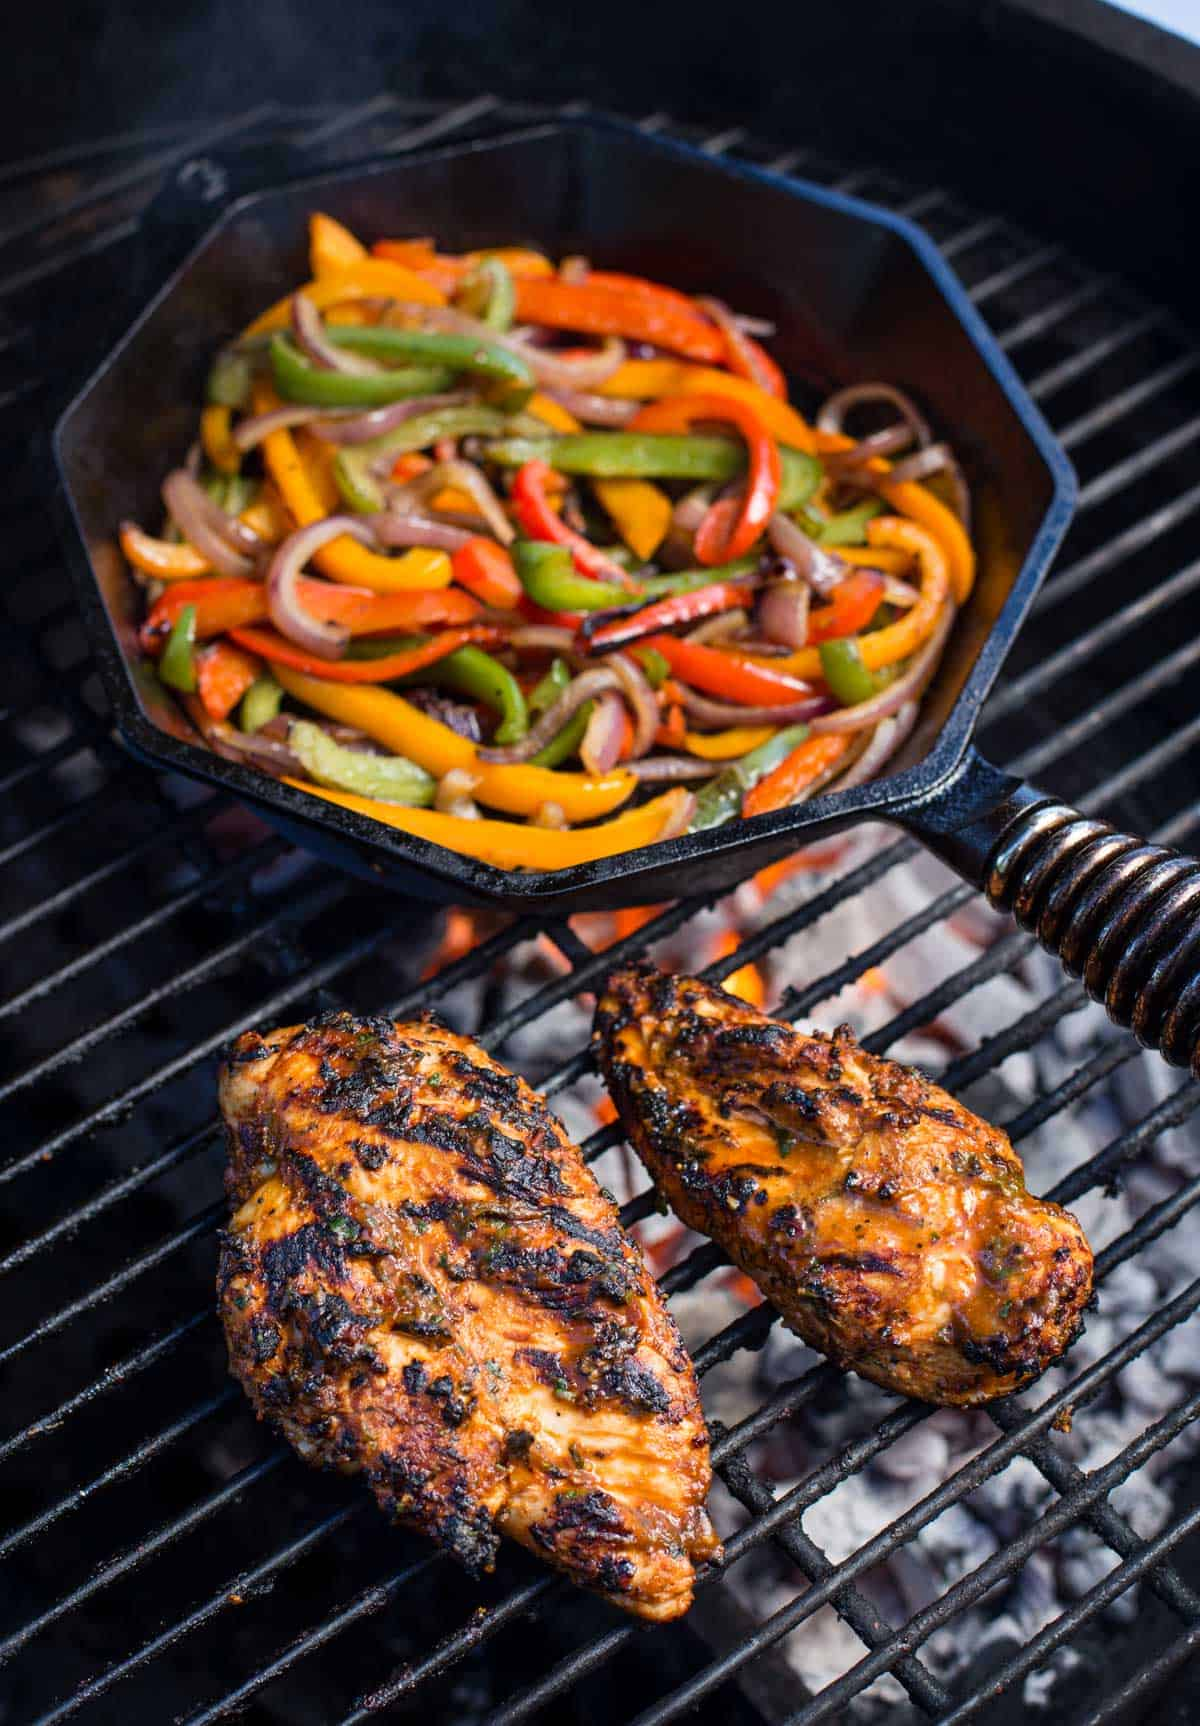 Chicken on the grill alongside peppers and onions cooking in a cast iron pan on the grill